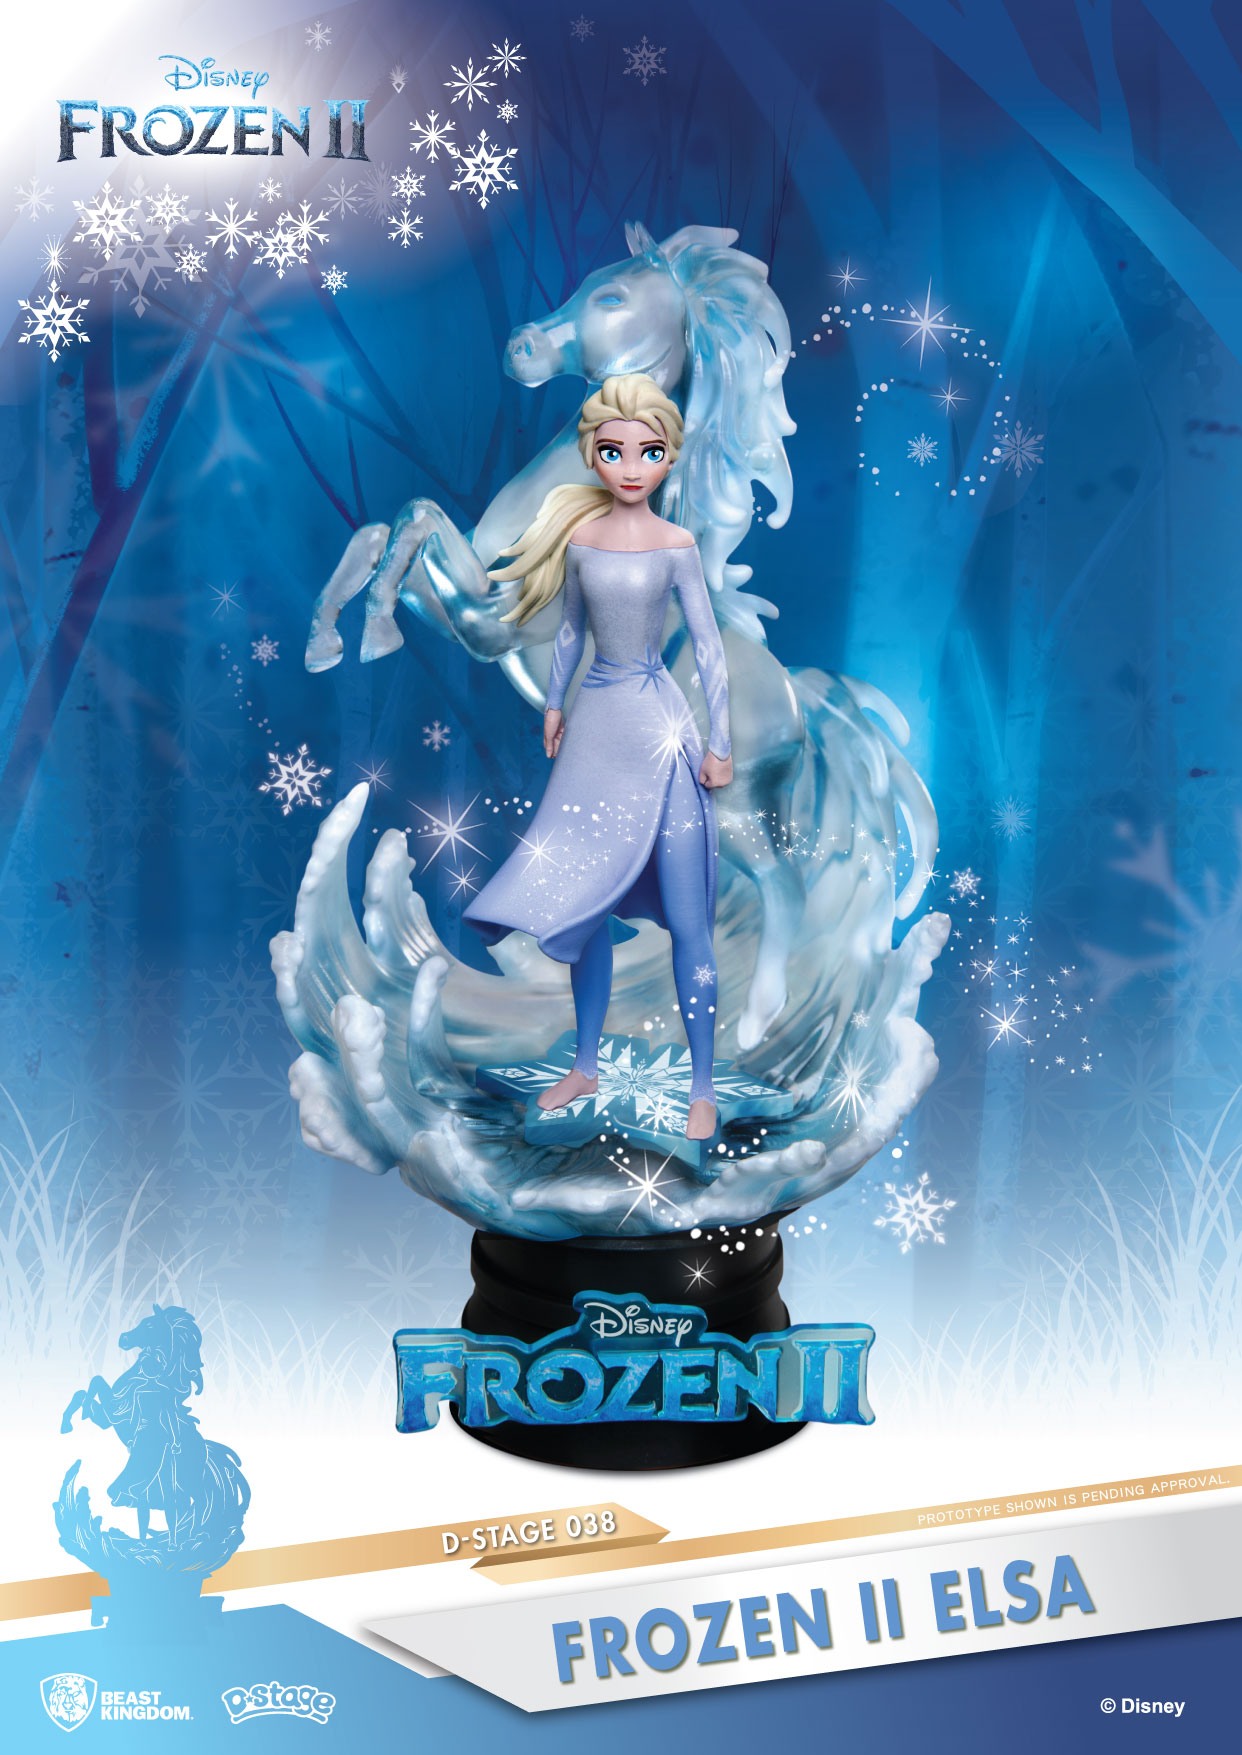 Disney - D-Select : Figurine Diorama Elsa Frozen II - La reine des neiges 2